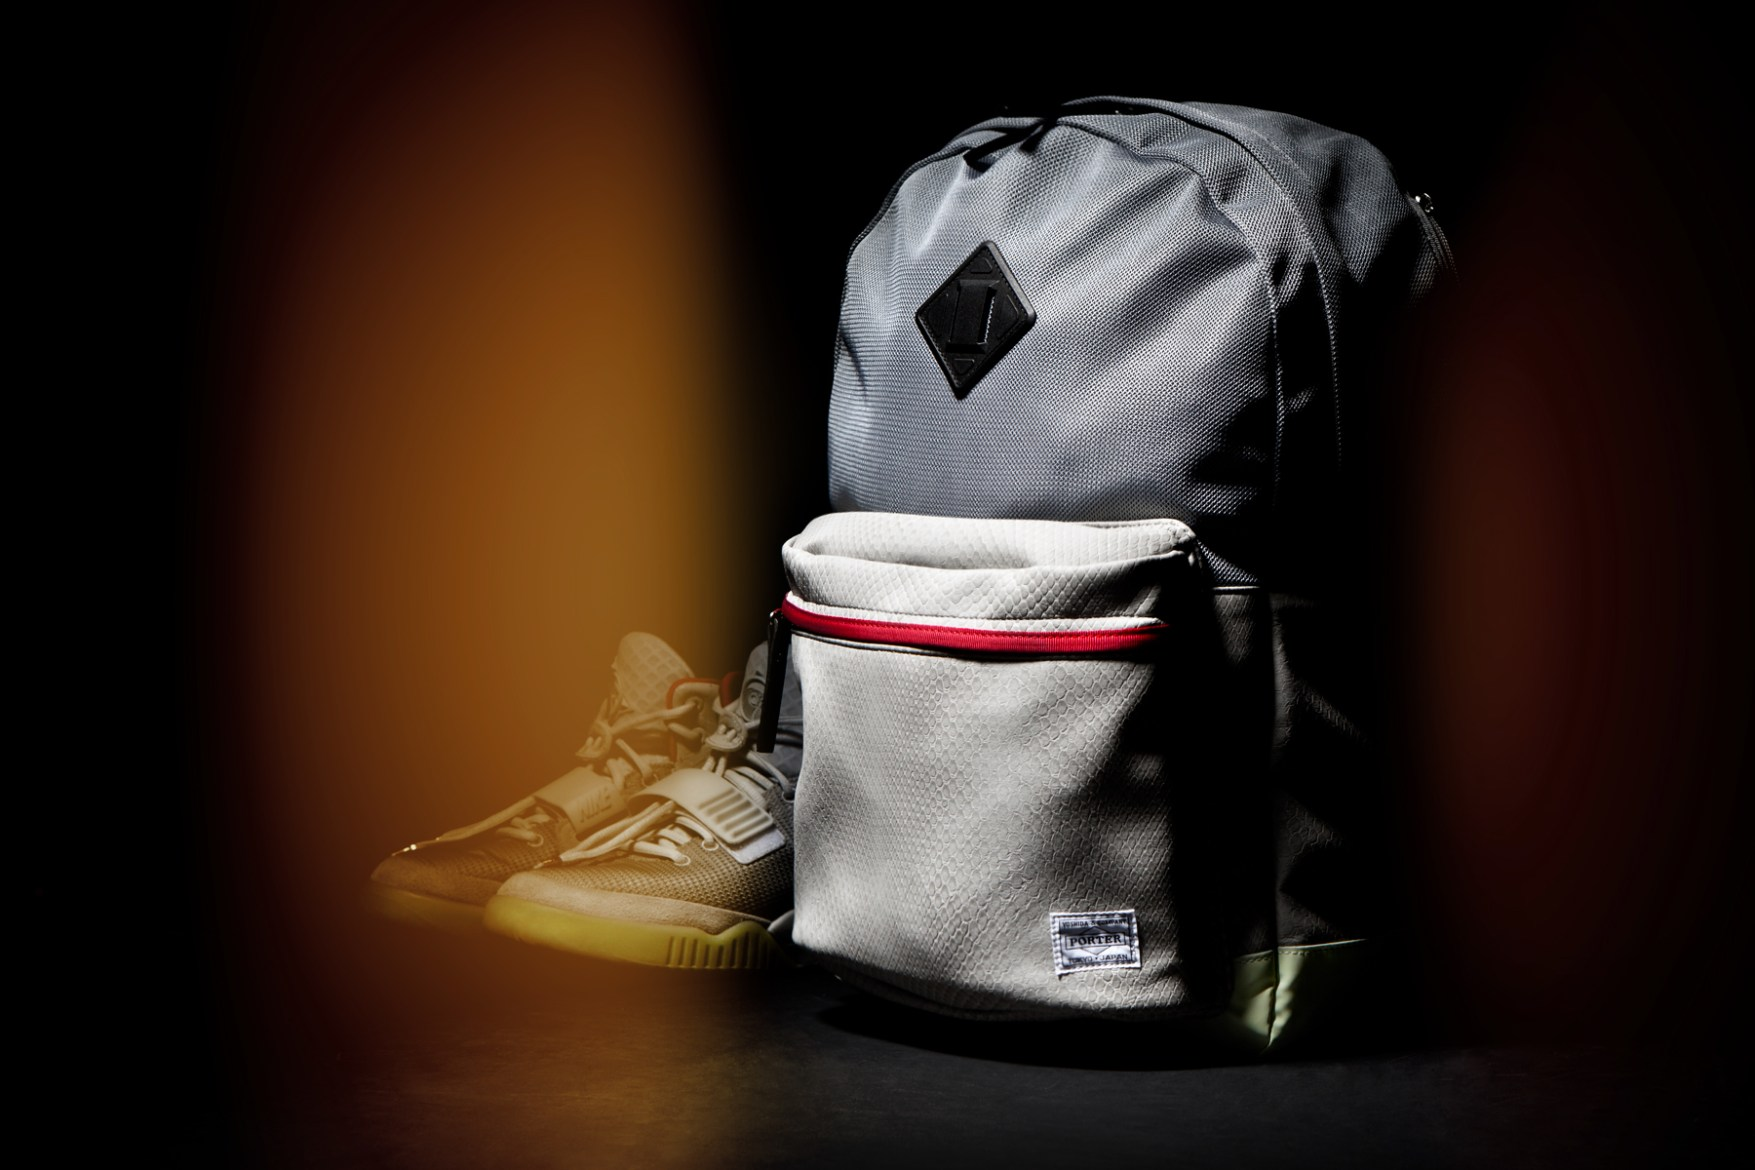 MAGIC STICK x PORTER Yeezy Backpack Editorial